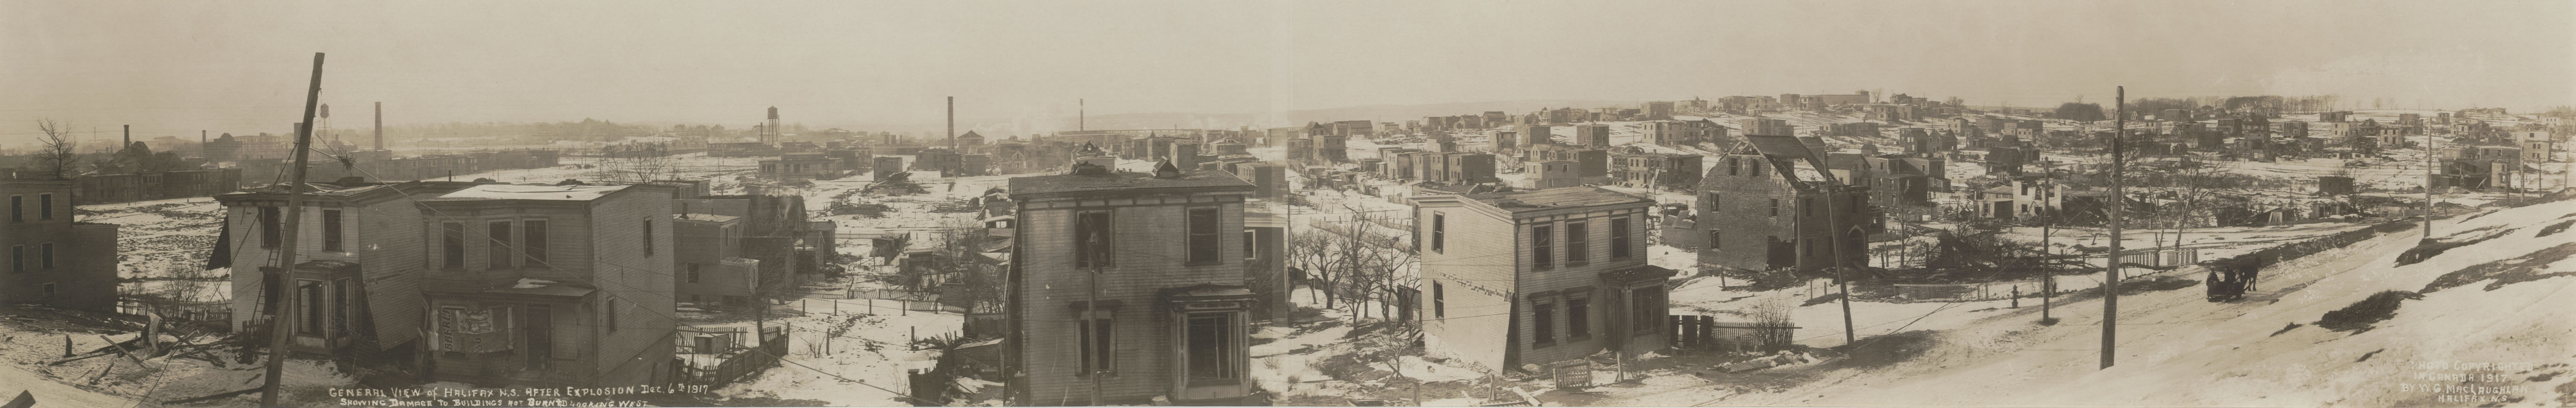 Explosion : General view of Halifax, N.S., after explosion, Dec. 6th 1917 showing damage to buildings not burned looking west